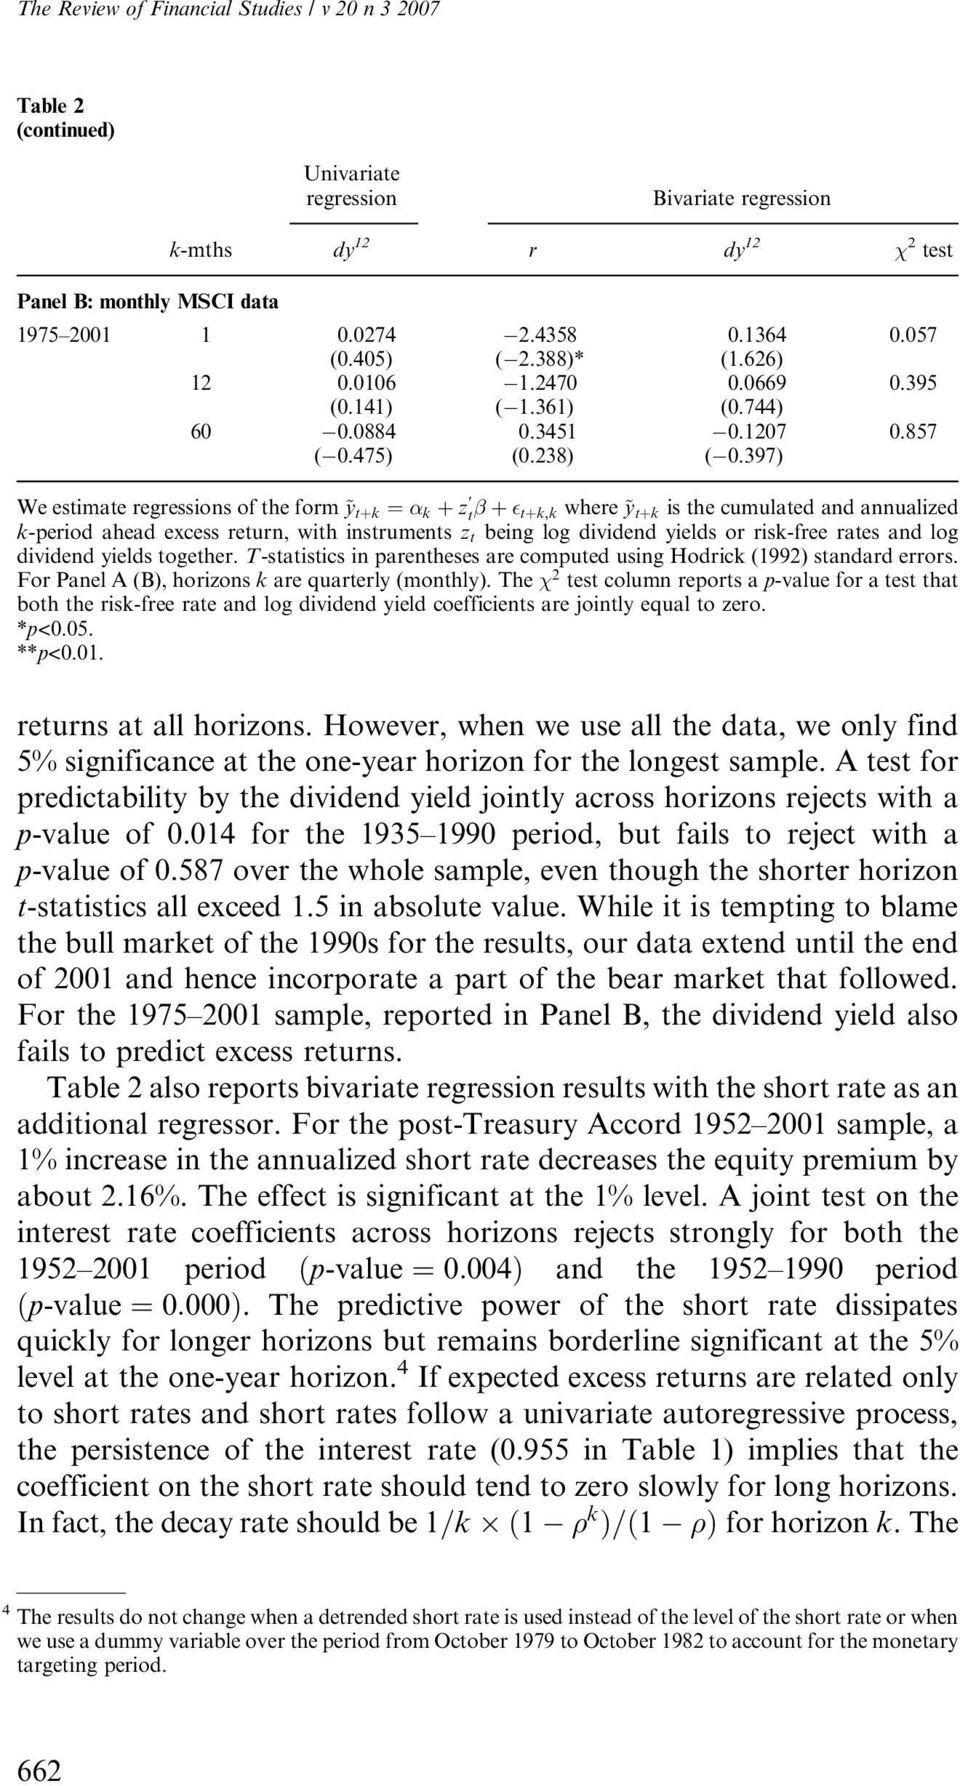 397) We estimate regressions of the form ~y tþk ¼ k þ z t þ tþk,k where ~y tþk is the cumulated and annualized k-period ahead excess return, with instruments z t being log dividend yields or